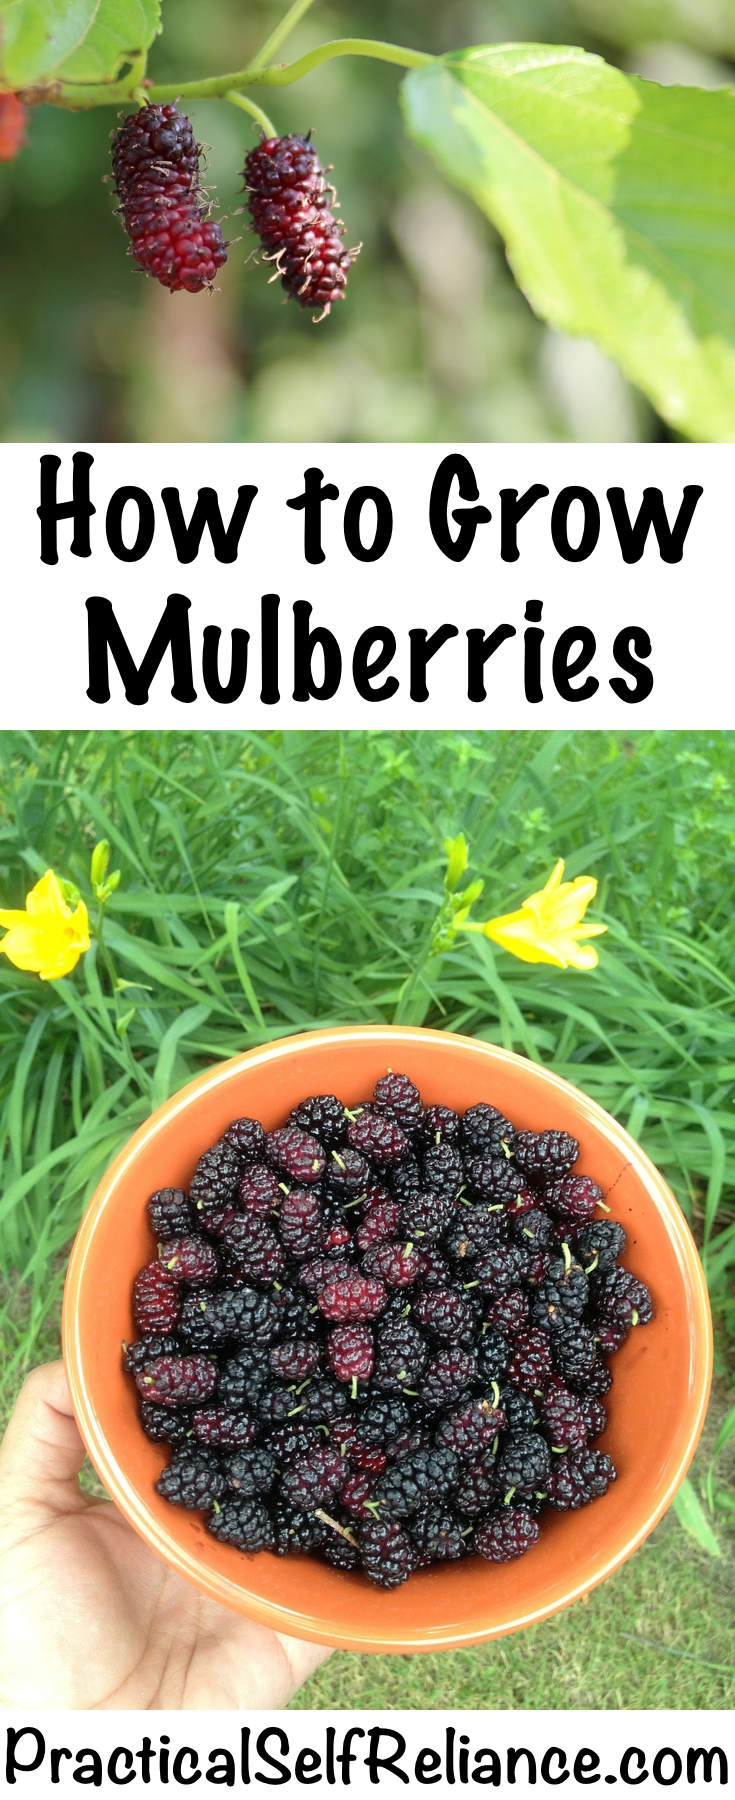 How to Grow Mulberries #mulberry #trees #howtogrow #permaculture #homesteading #selfsufficiency #orchard #berries